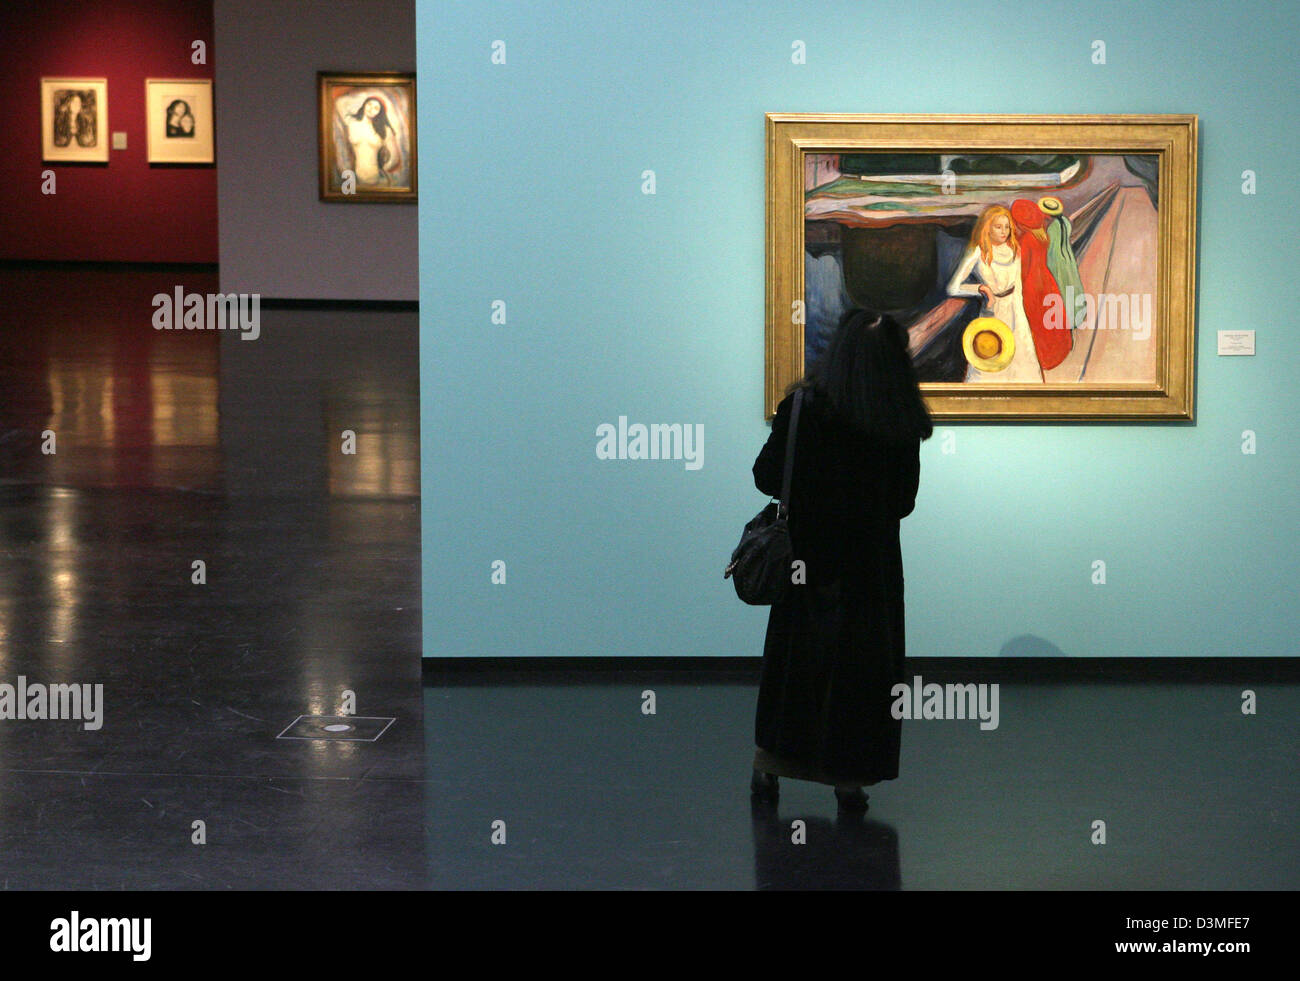 A women tours through the exhibition  '...aus dem modernen Seelenleben' (the modern life of the soul) featuring Stock Photo